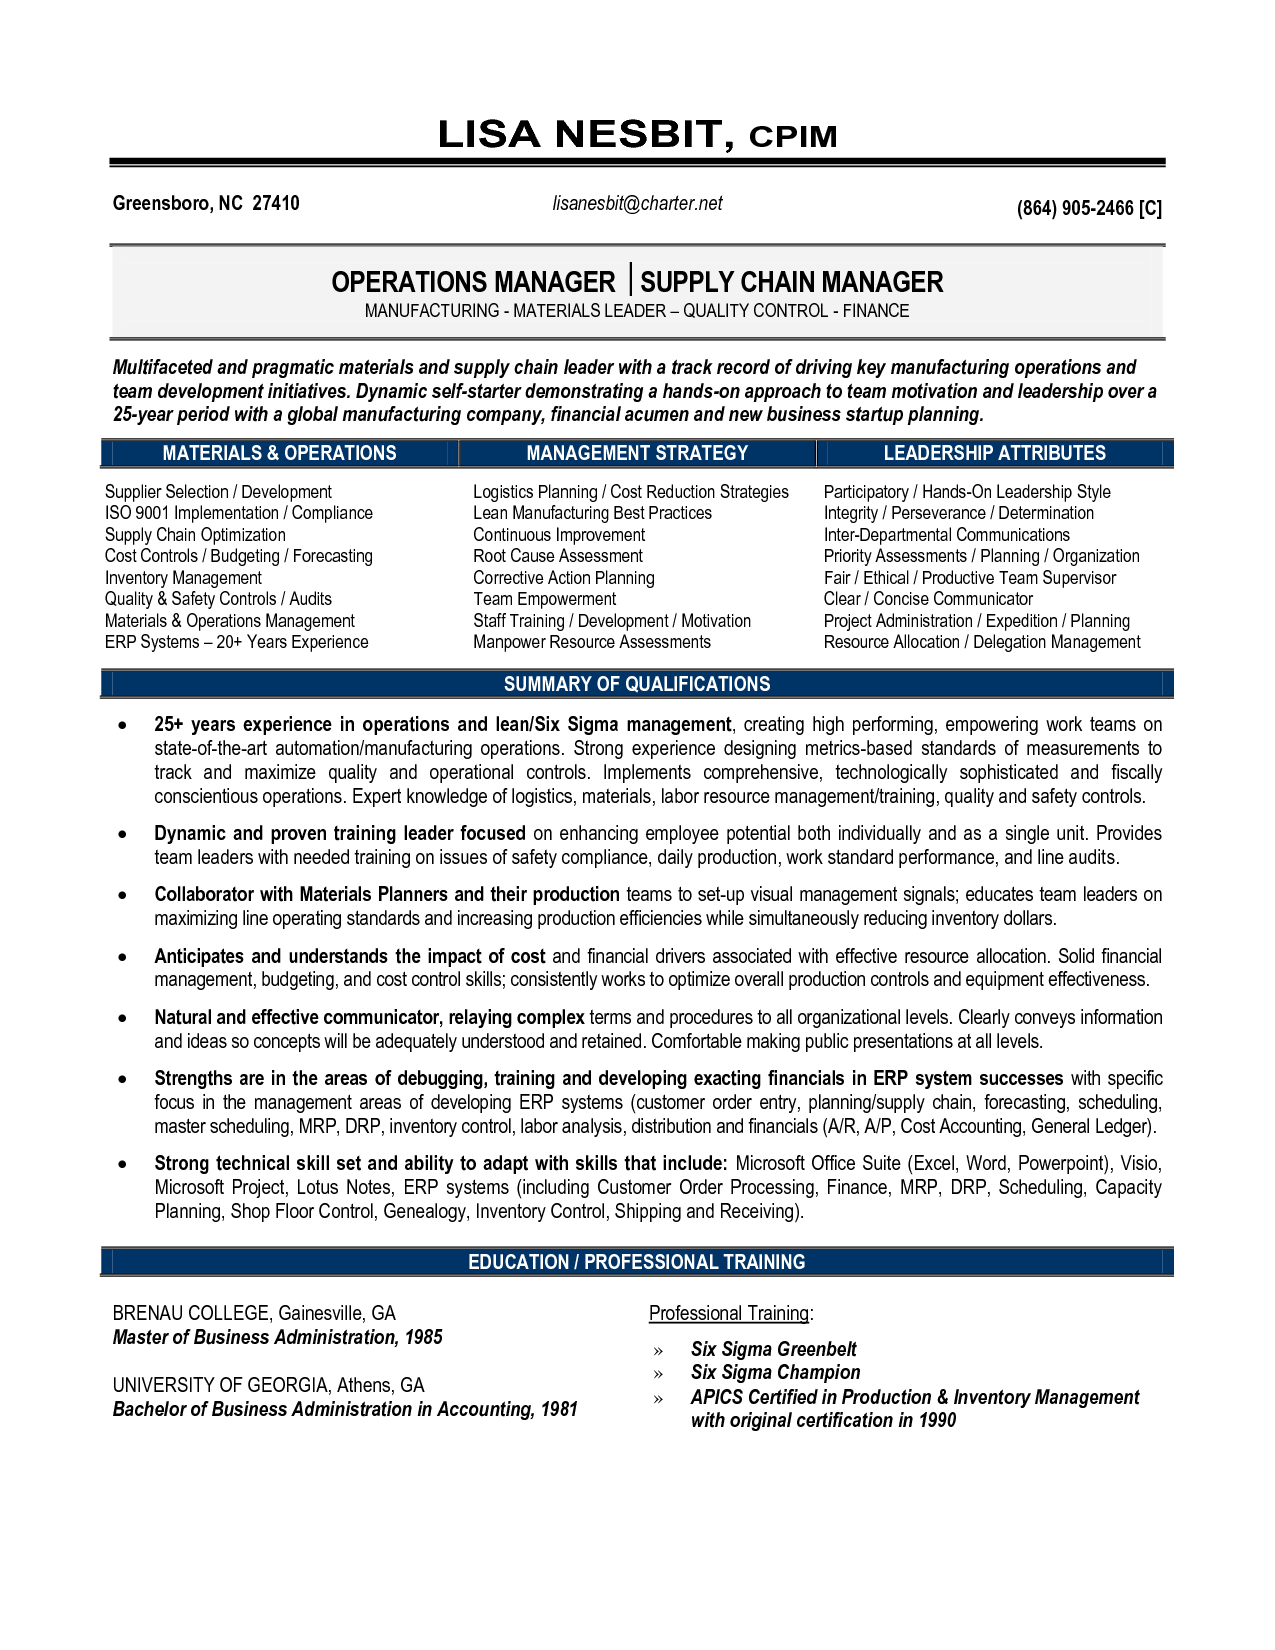 Resumes Online Inc Senior Logistic Management Resume Senior Manager Supply